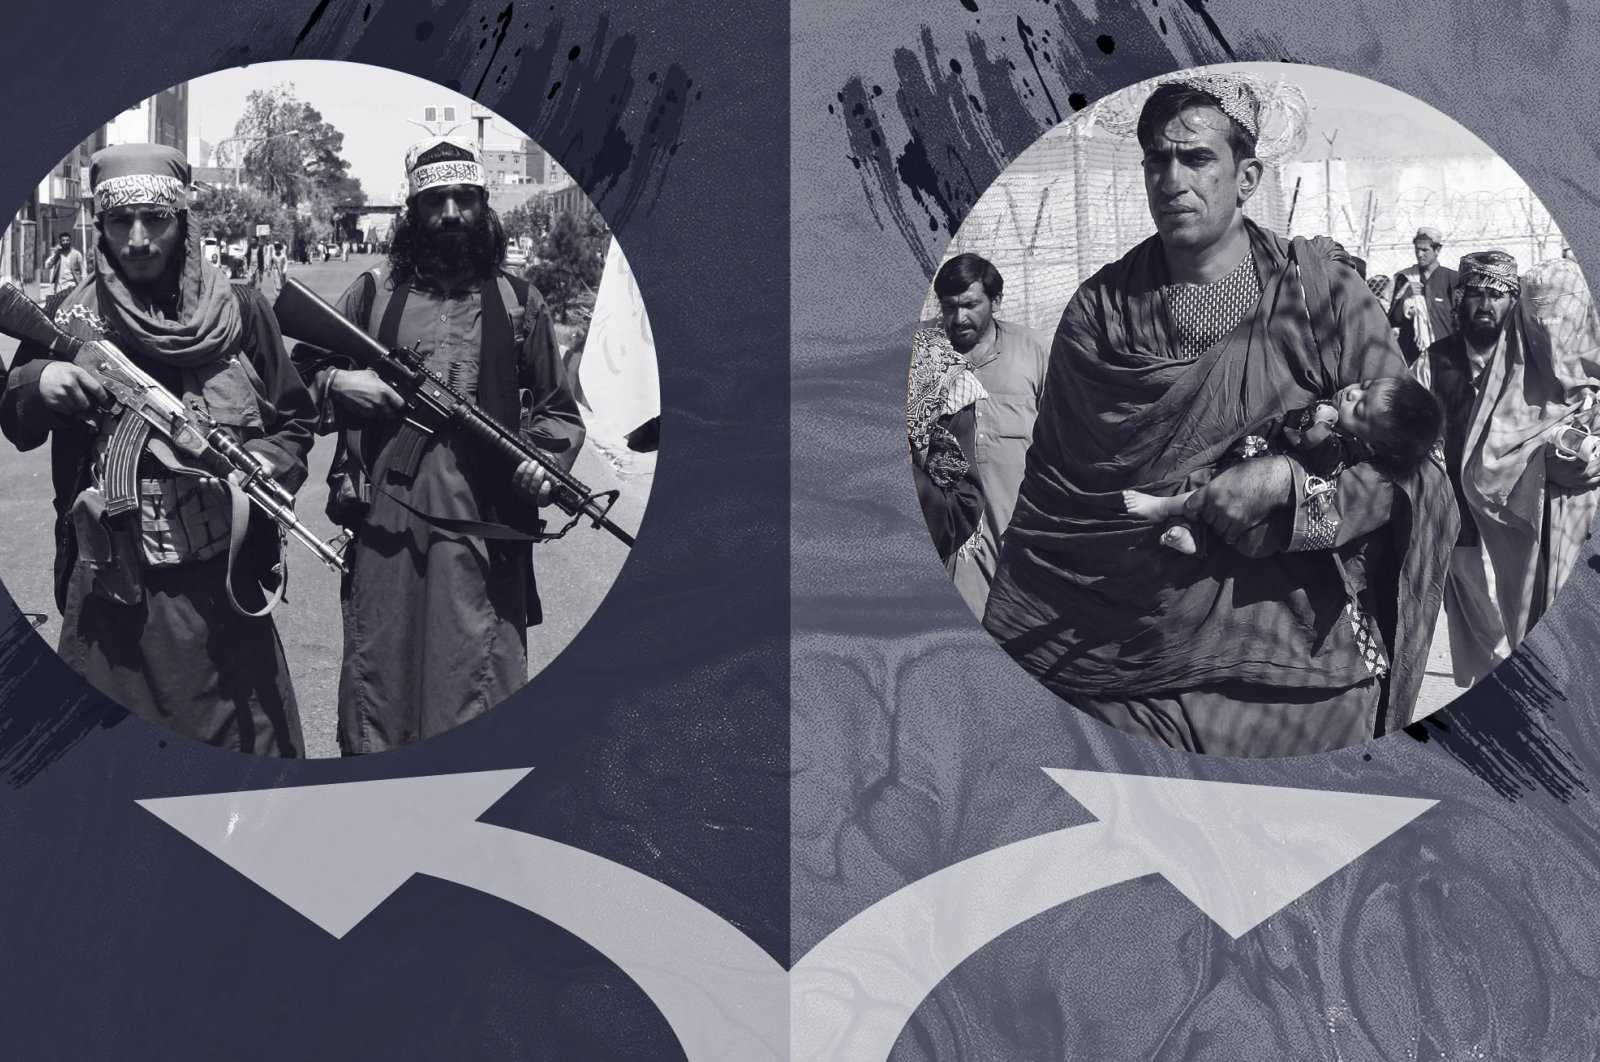 A photo illustration by Daily Sabah's Büşra Öztürk shows the Taliban at the crossroads as they decide how to govern Afghanistan.